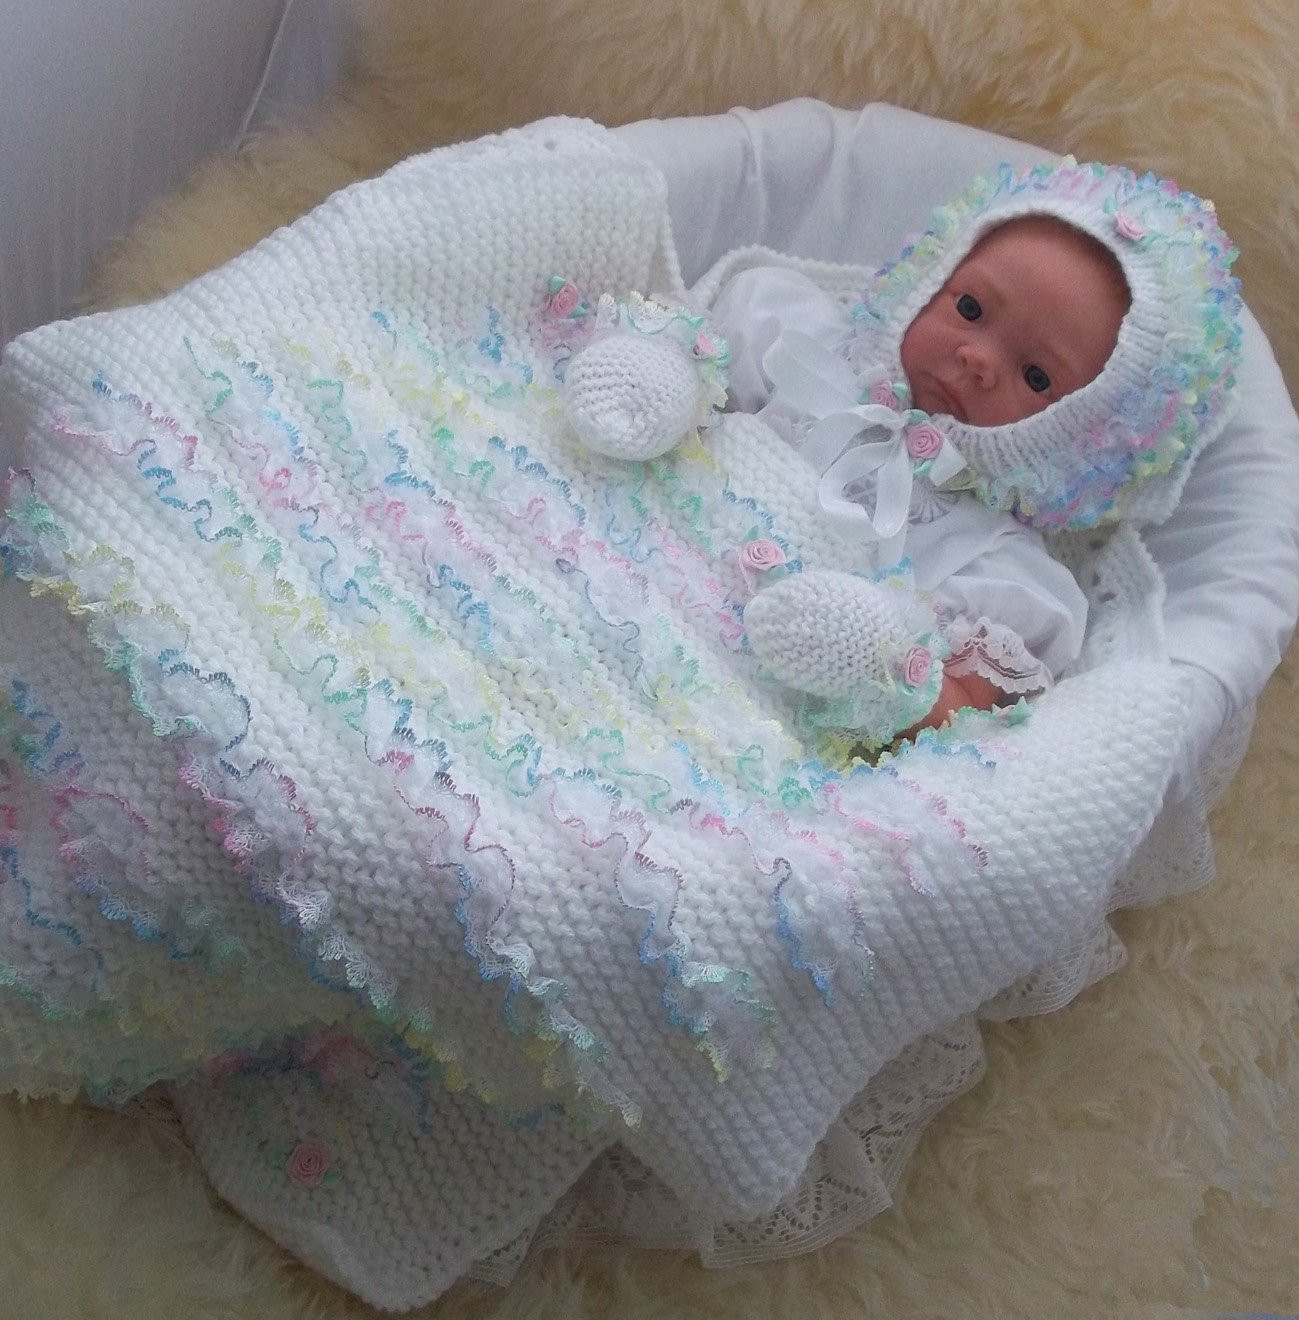 Knitted Baby Blanket Lovely Baby Knitting Pattern Girls Lace Pram Blanket Baby Hat Of Amazing 46 Pictures Knitted Baby Blanket